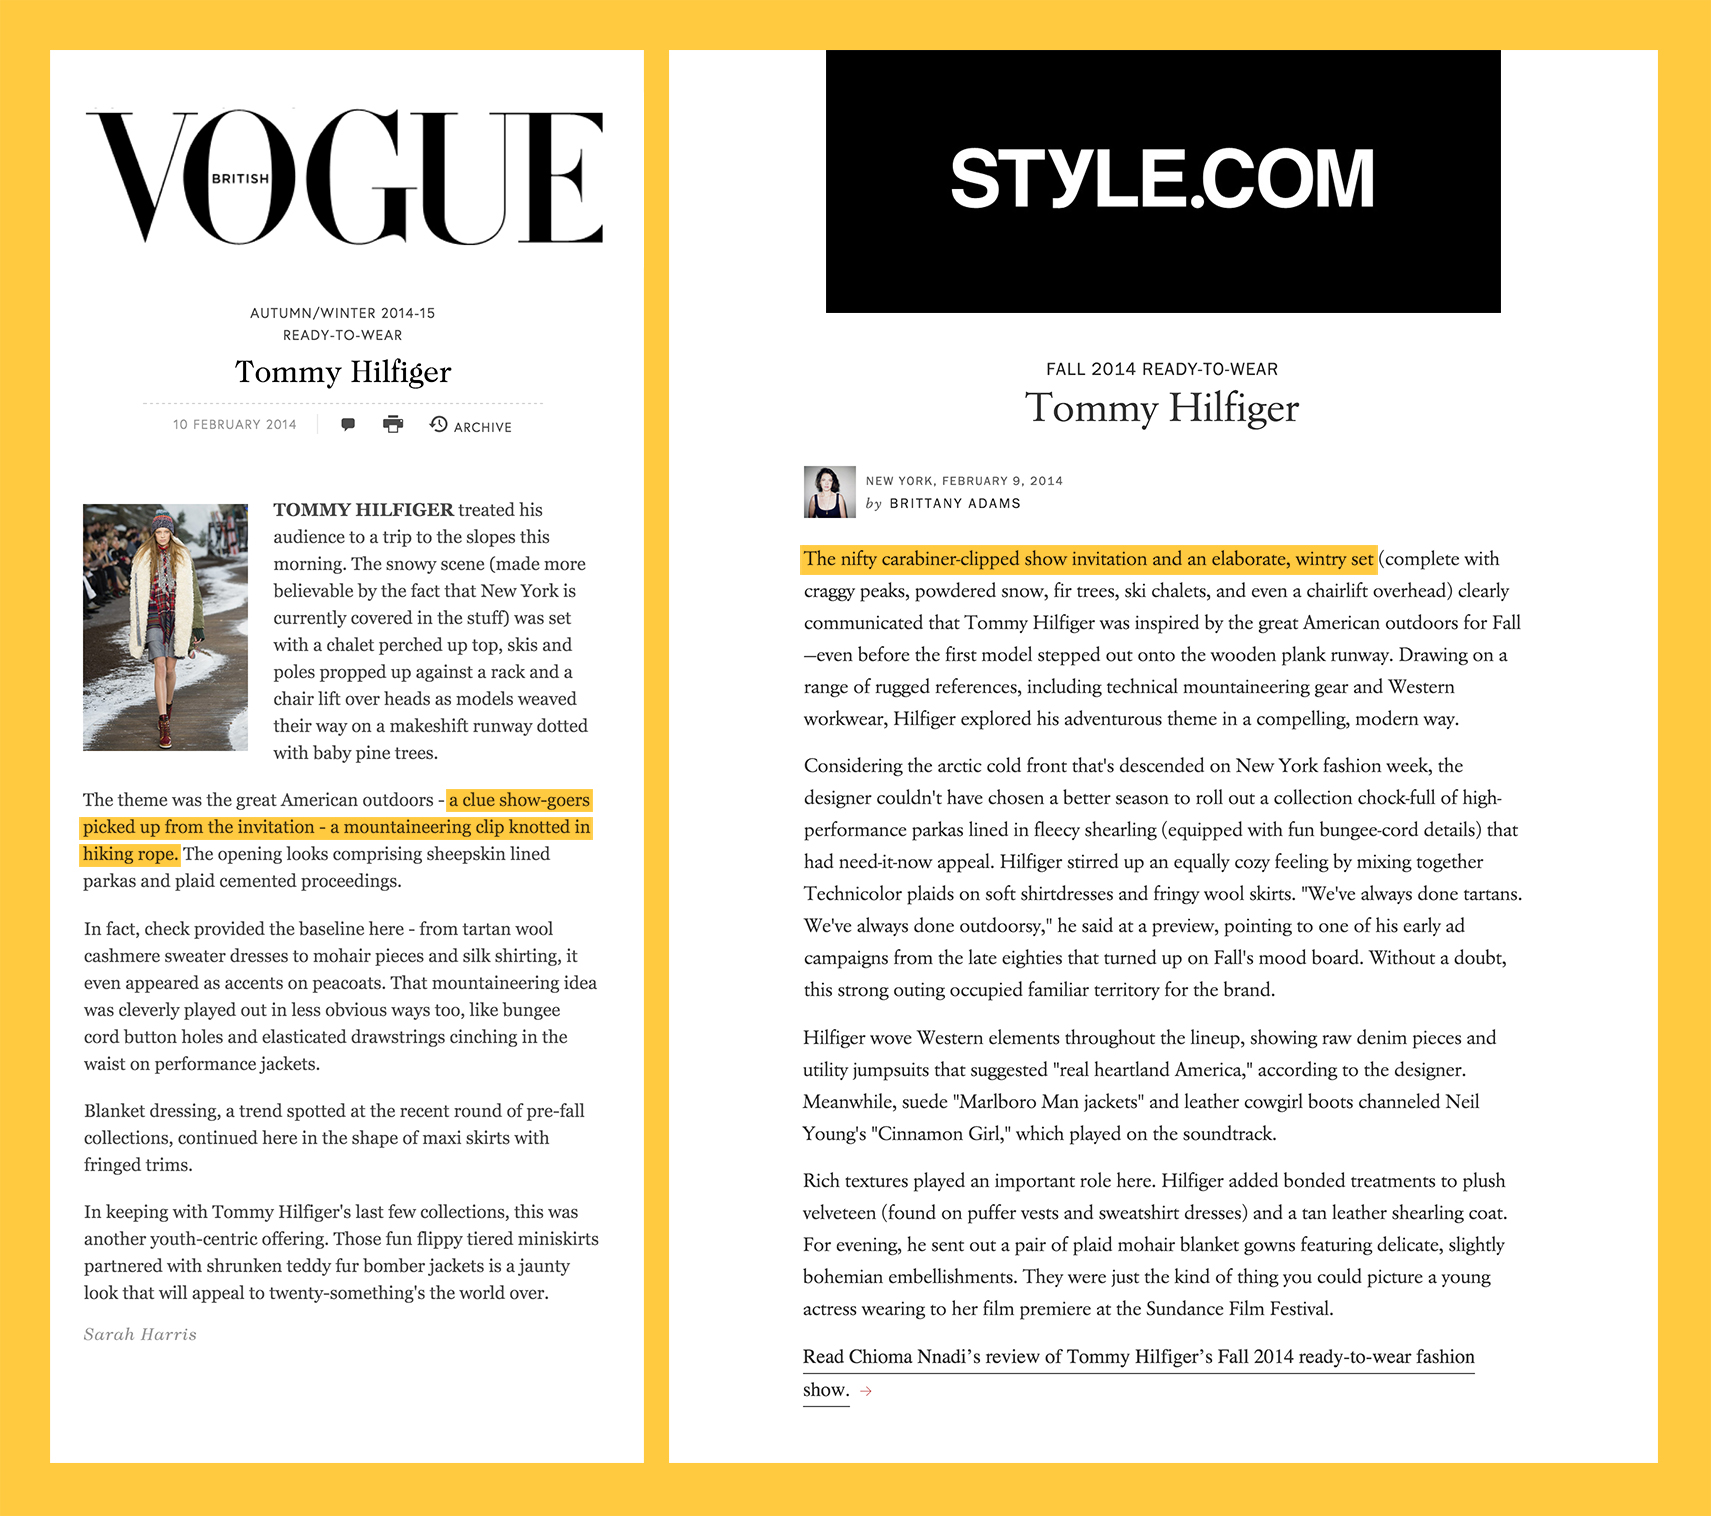 Ain't no valley low with  British Vogue  and  Style.com .